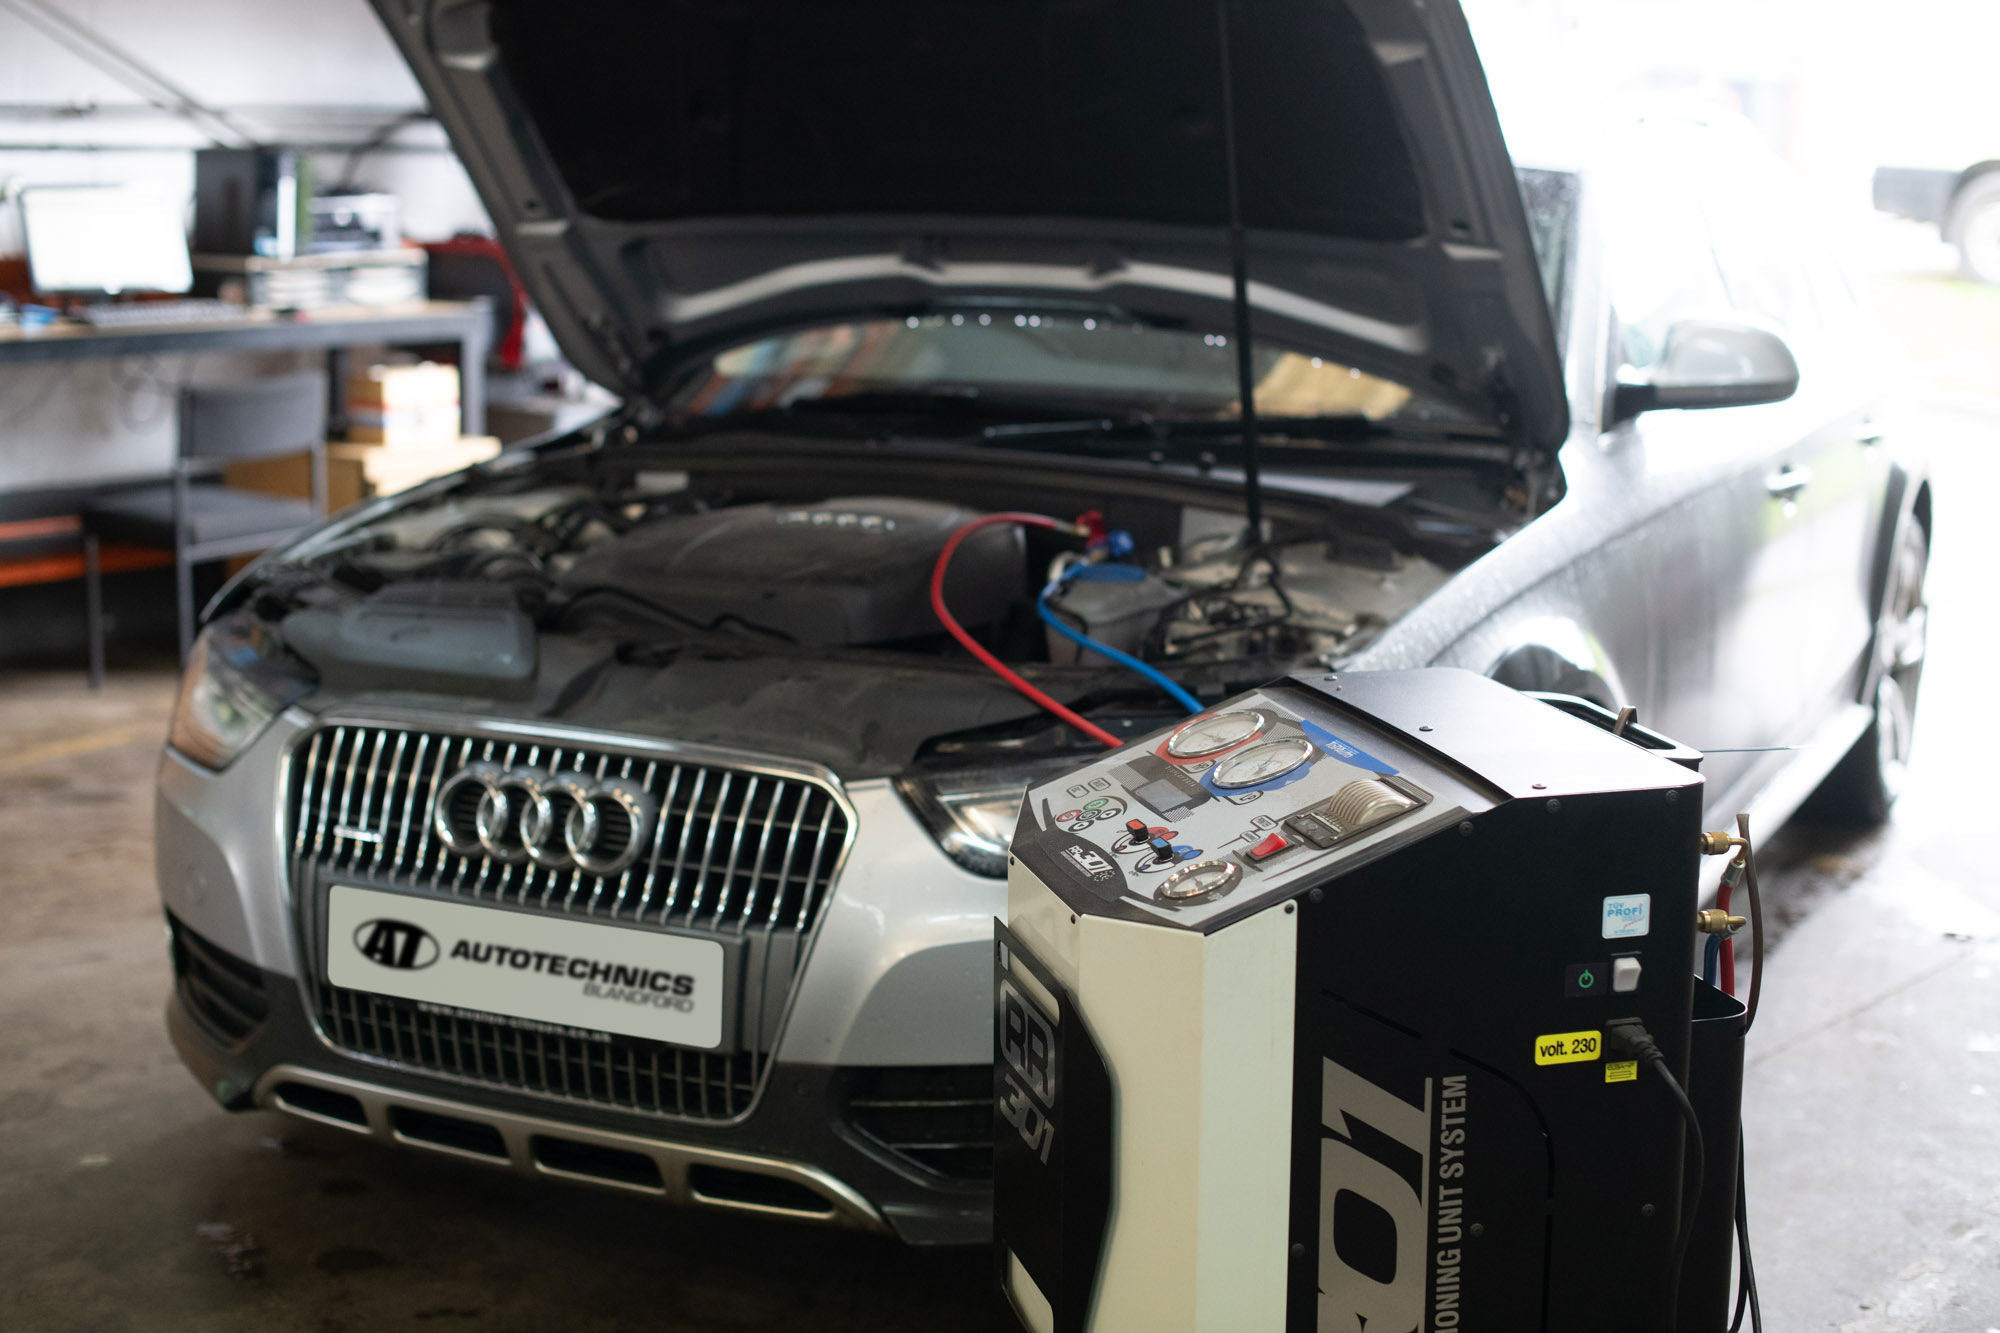 Air Conditioning repairs, re-gas and servicing at Autotechnics Blandford